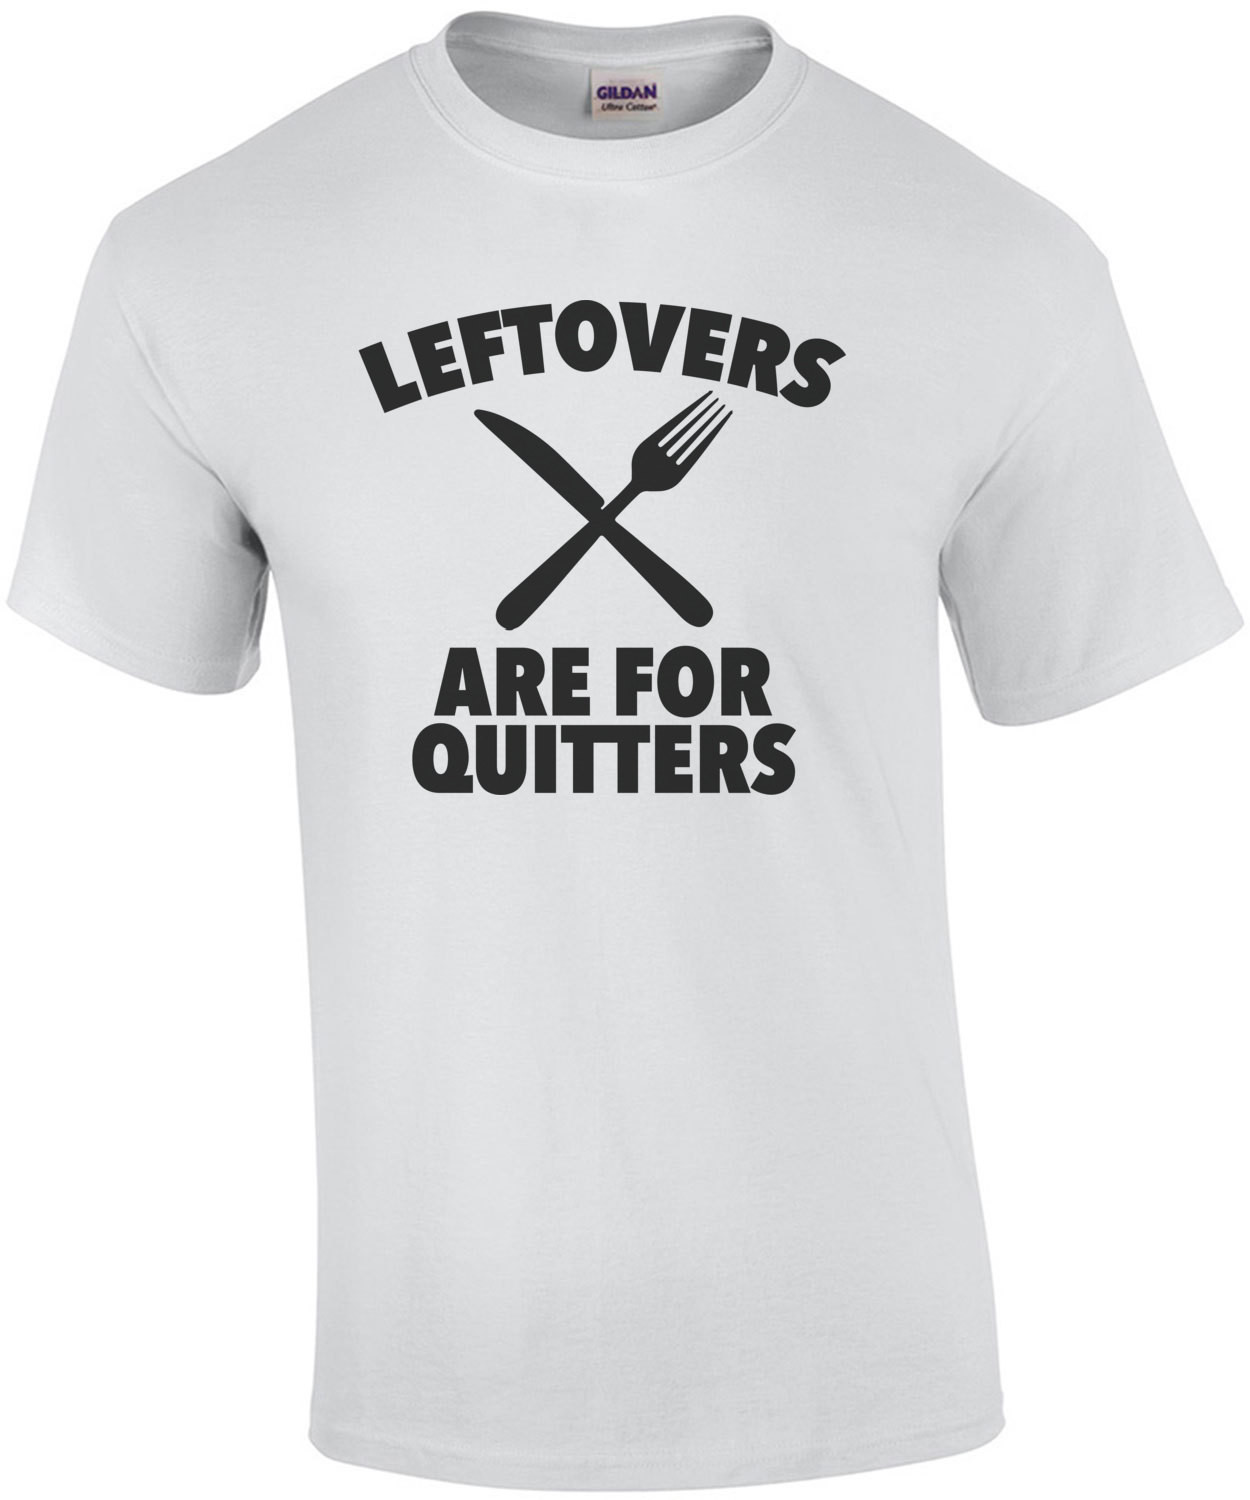 Leftovers are for quiters - fat t-shirt